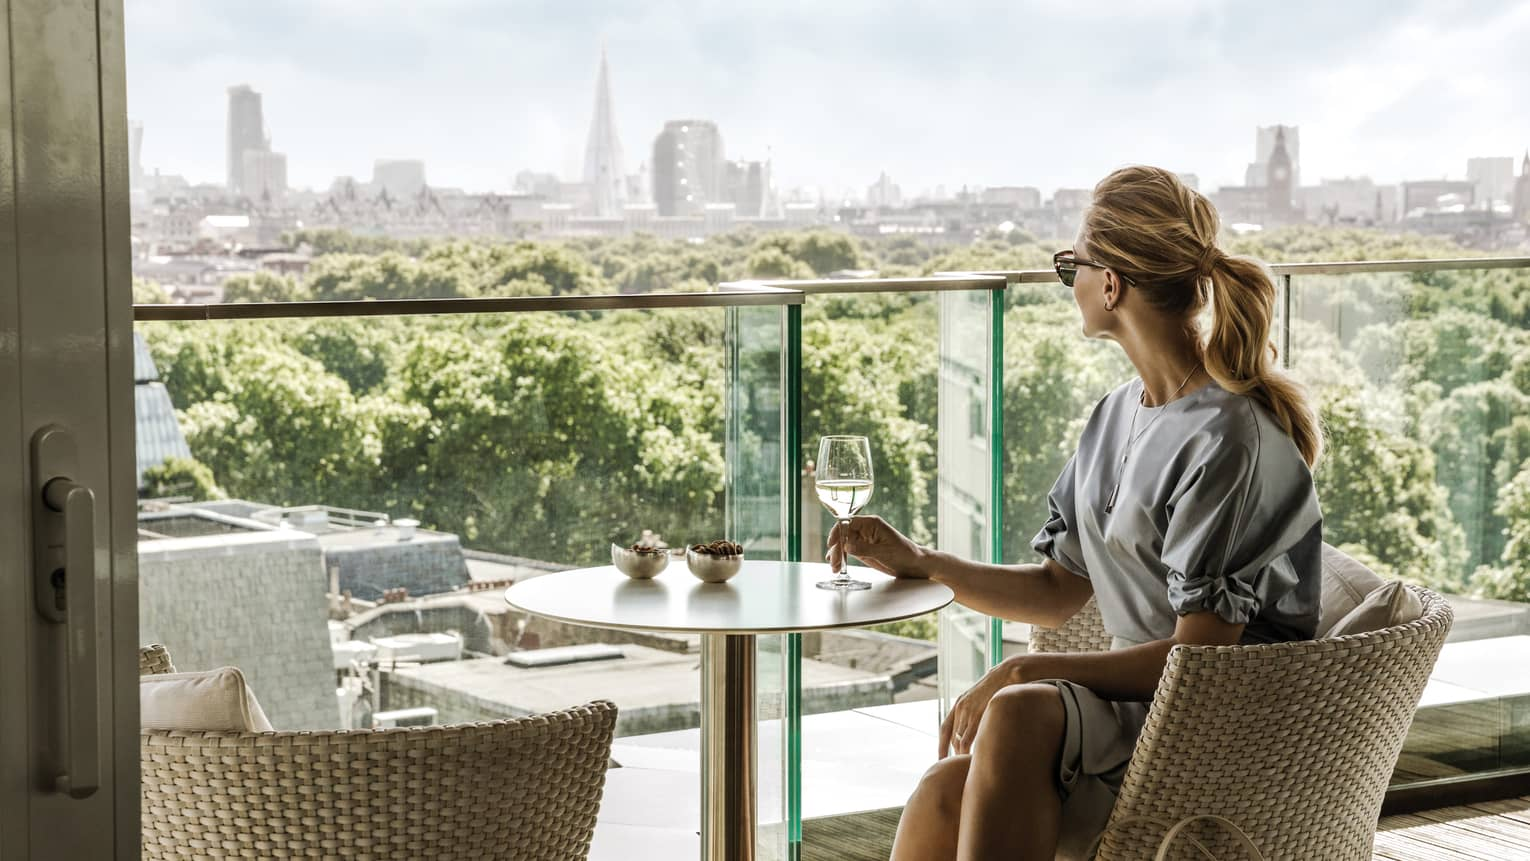 Woman sits at patio table with glass of wine, looks over glass balcony to trees, London skyline